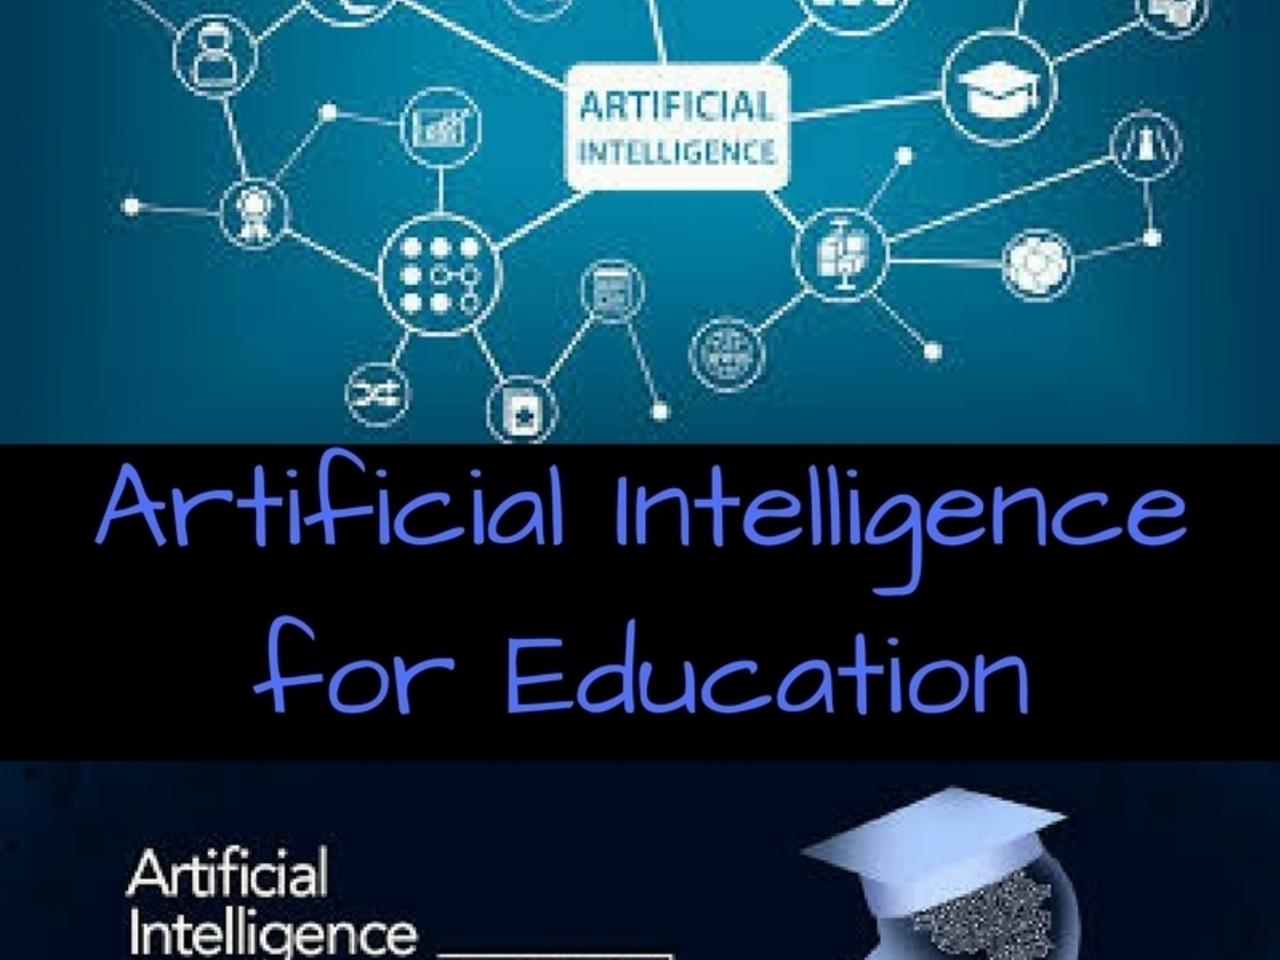 Artificial Intelligence for Education